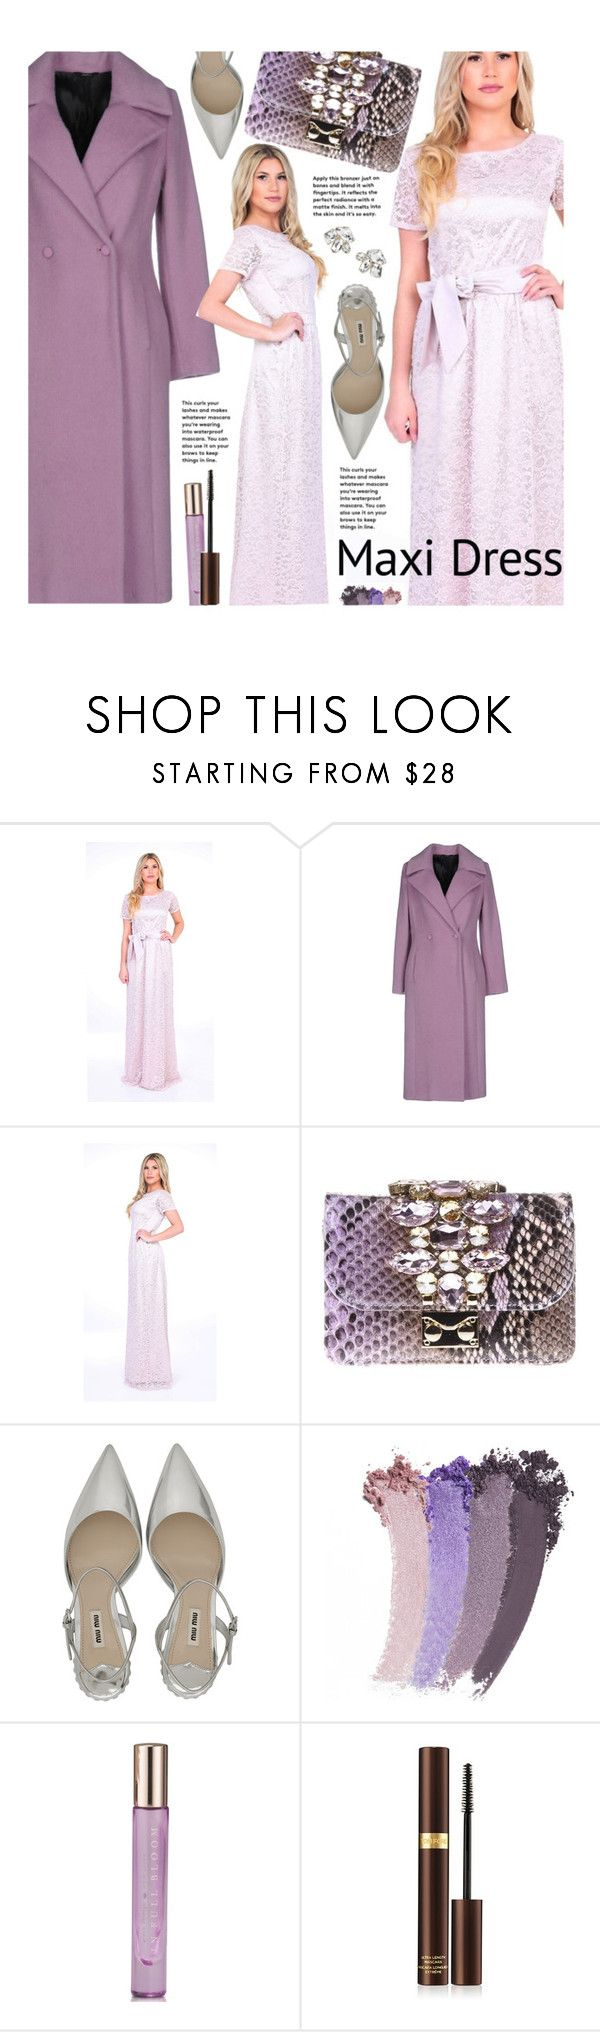 """""""Maxi Dress"""" by beebeely-look ❤ liked on Polyvore featuring Carla G., GEDEBE, Gucci, Kate Spade, Tom Ford, Atelier Swarovski, dresses, wedding, maxidress and lacedress"""